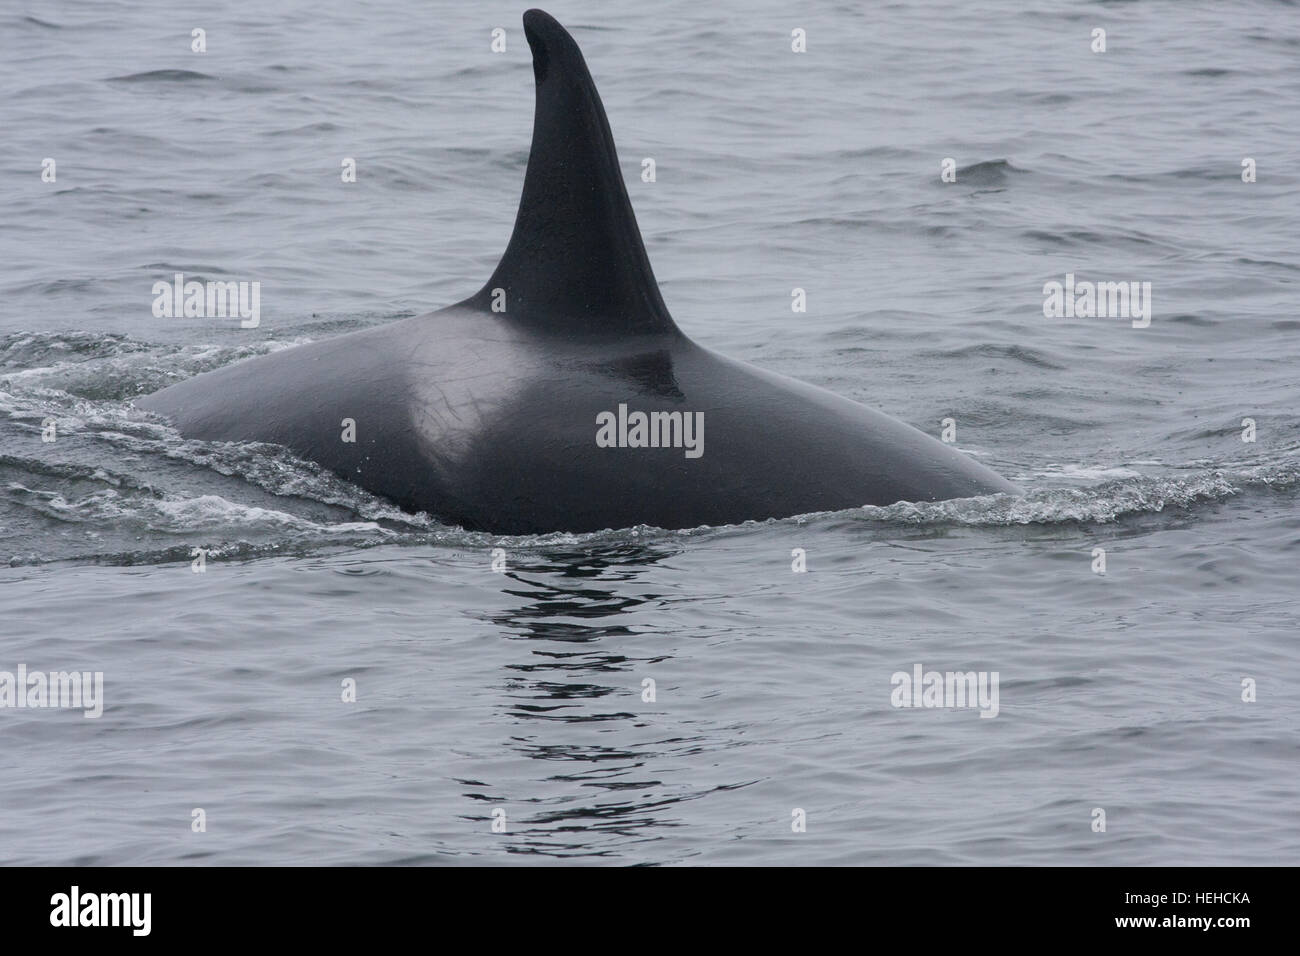 Whale spotted on a whale watching trip from Monterey Harbour,Harbor,California. - Stock Image